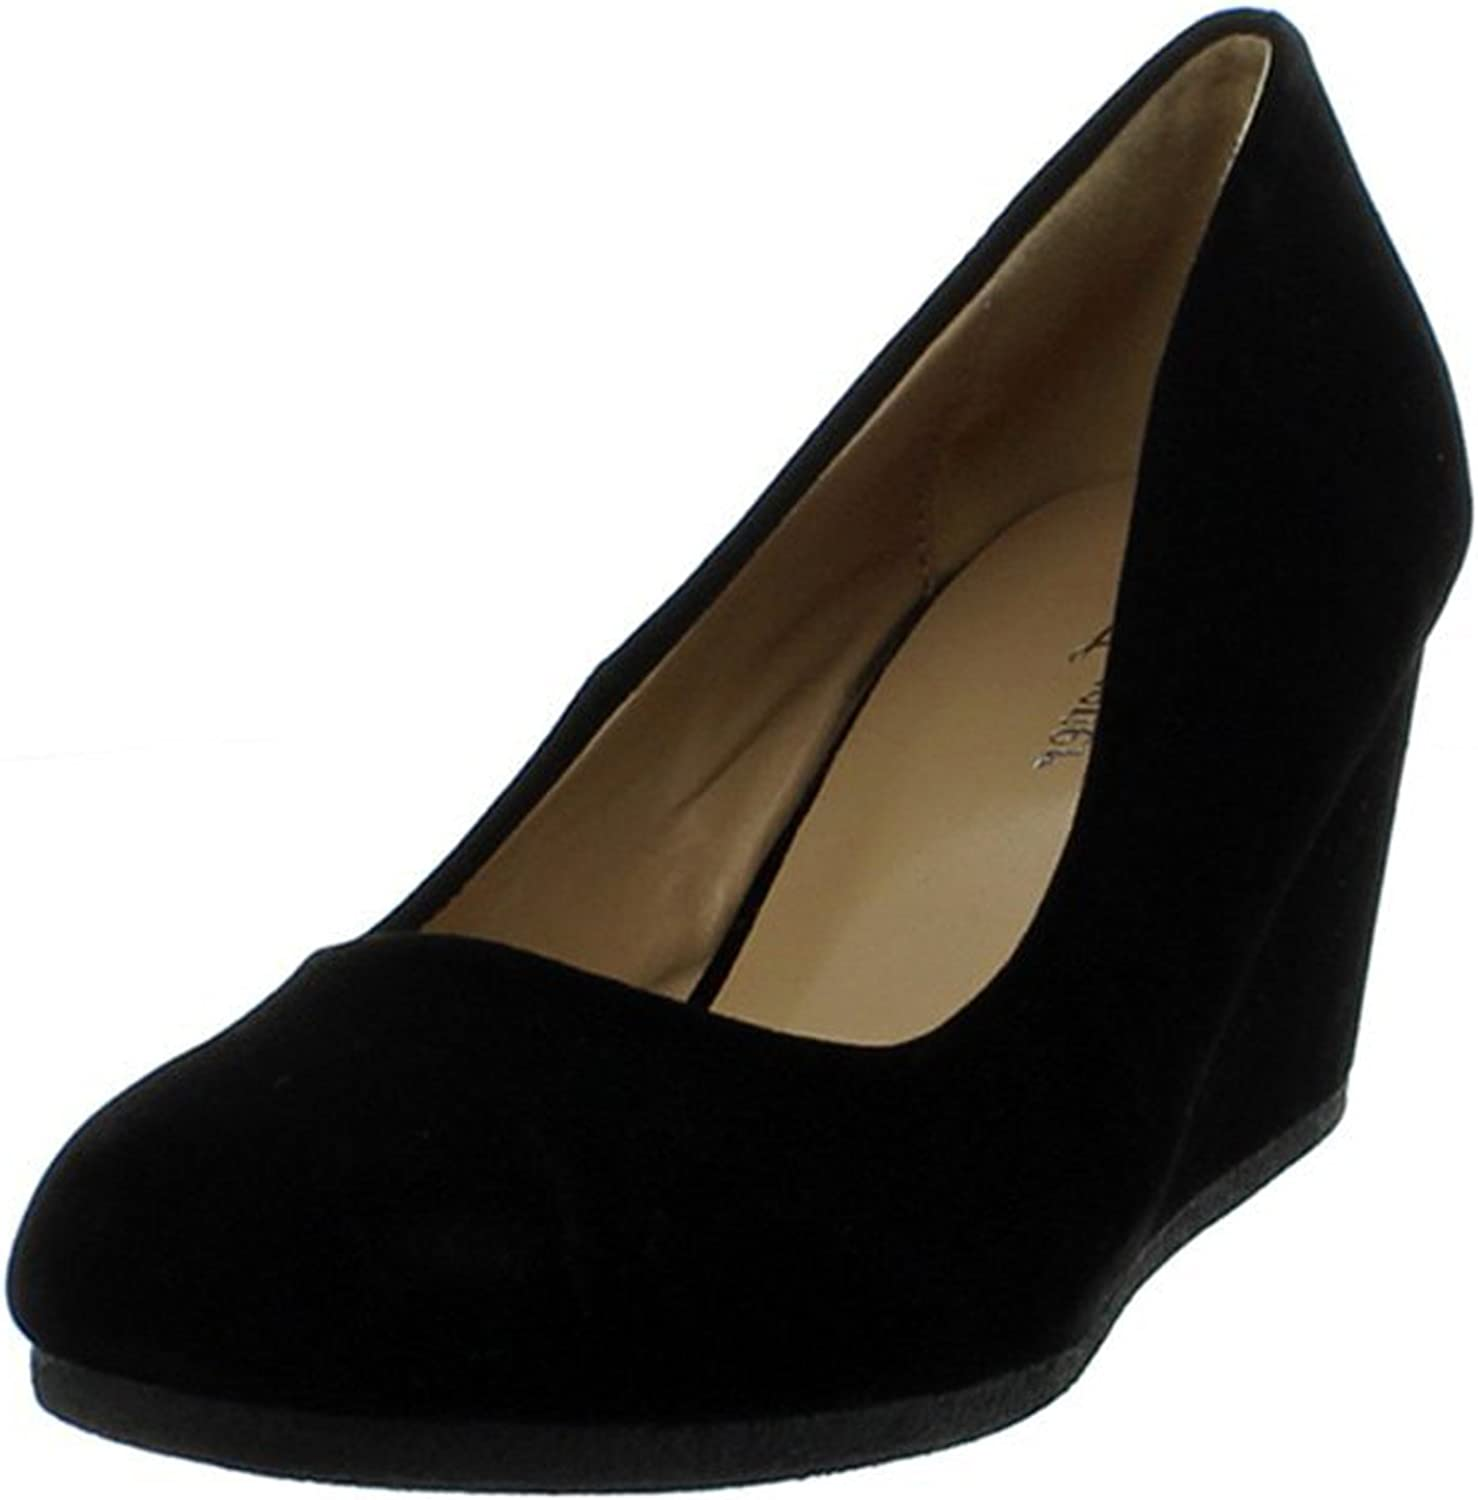 Forever Link Women's Patricia02 Wedge Pumps shoesBlack Suede7.5